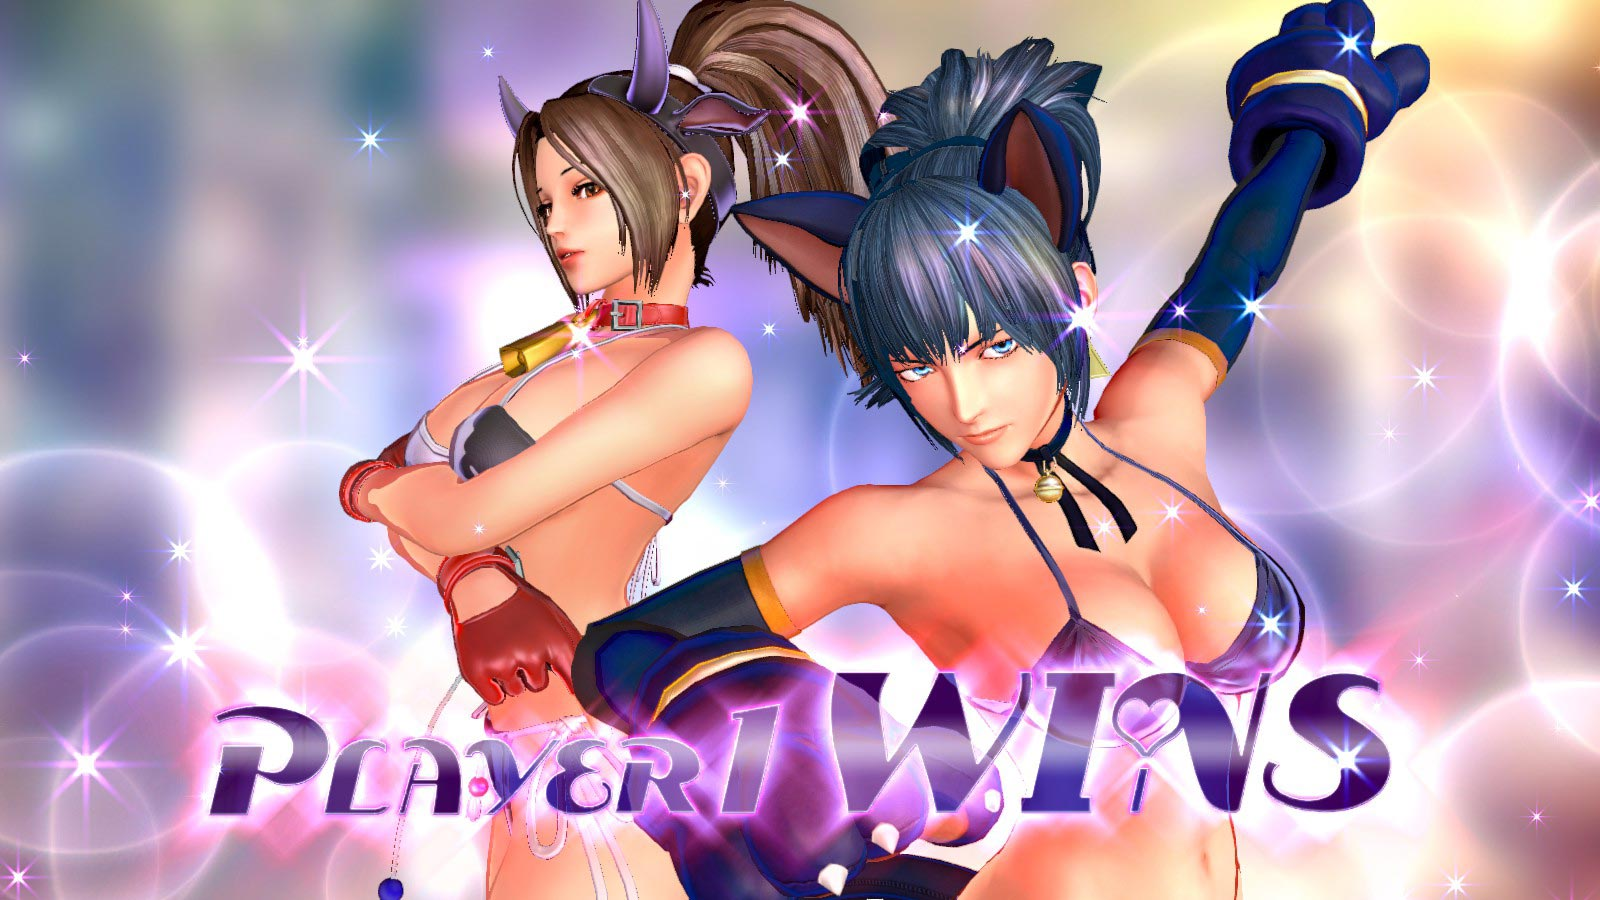 SNK Heroines Tag Team Frenzy Steam screenshots 3 out of 6 image gallery